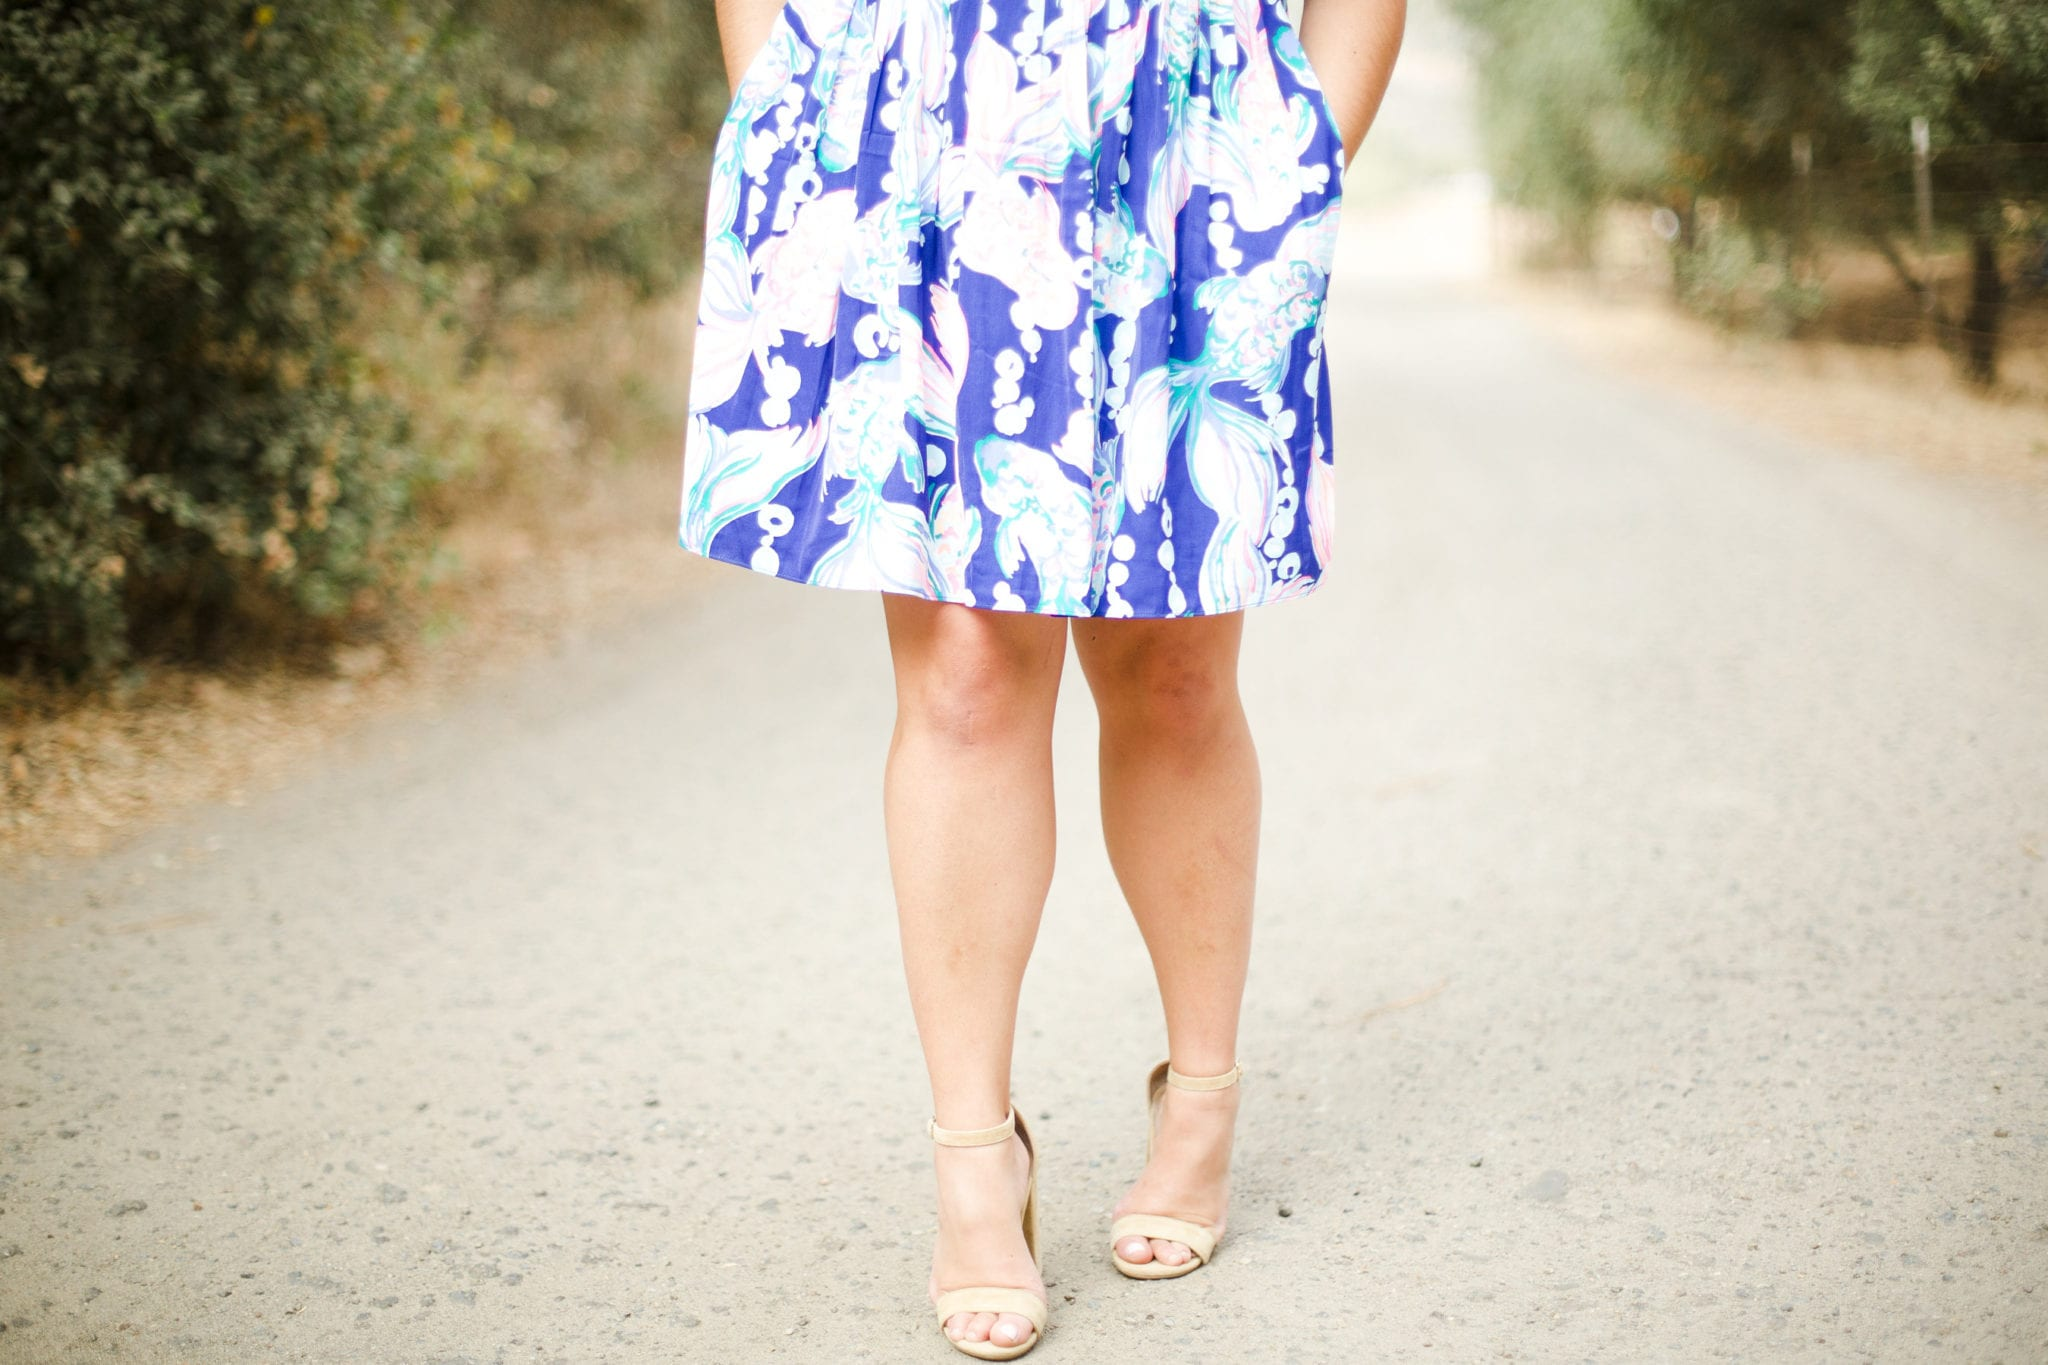 steve madden heels | Lilly Pulitzer Dress styled by popular San Diego fashion blogger, The Brunette & The Beach